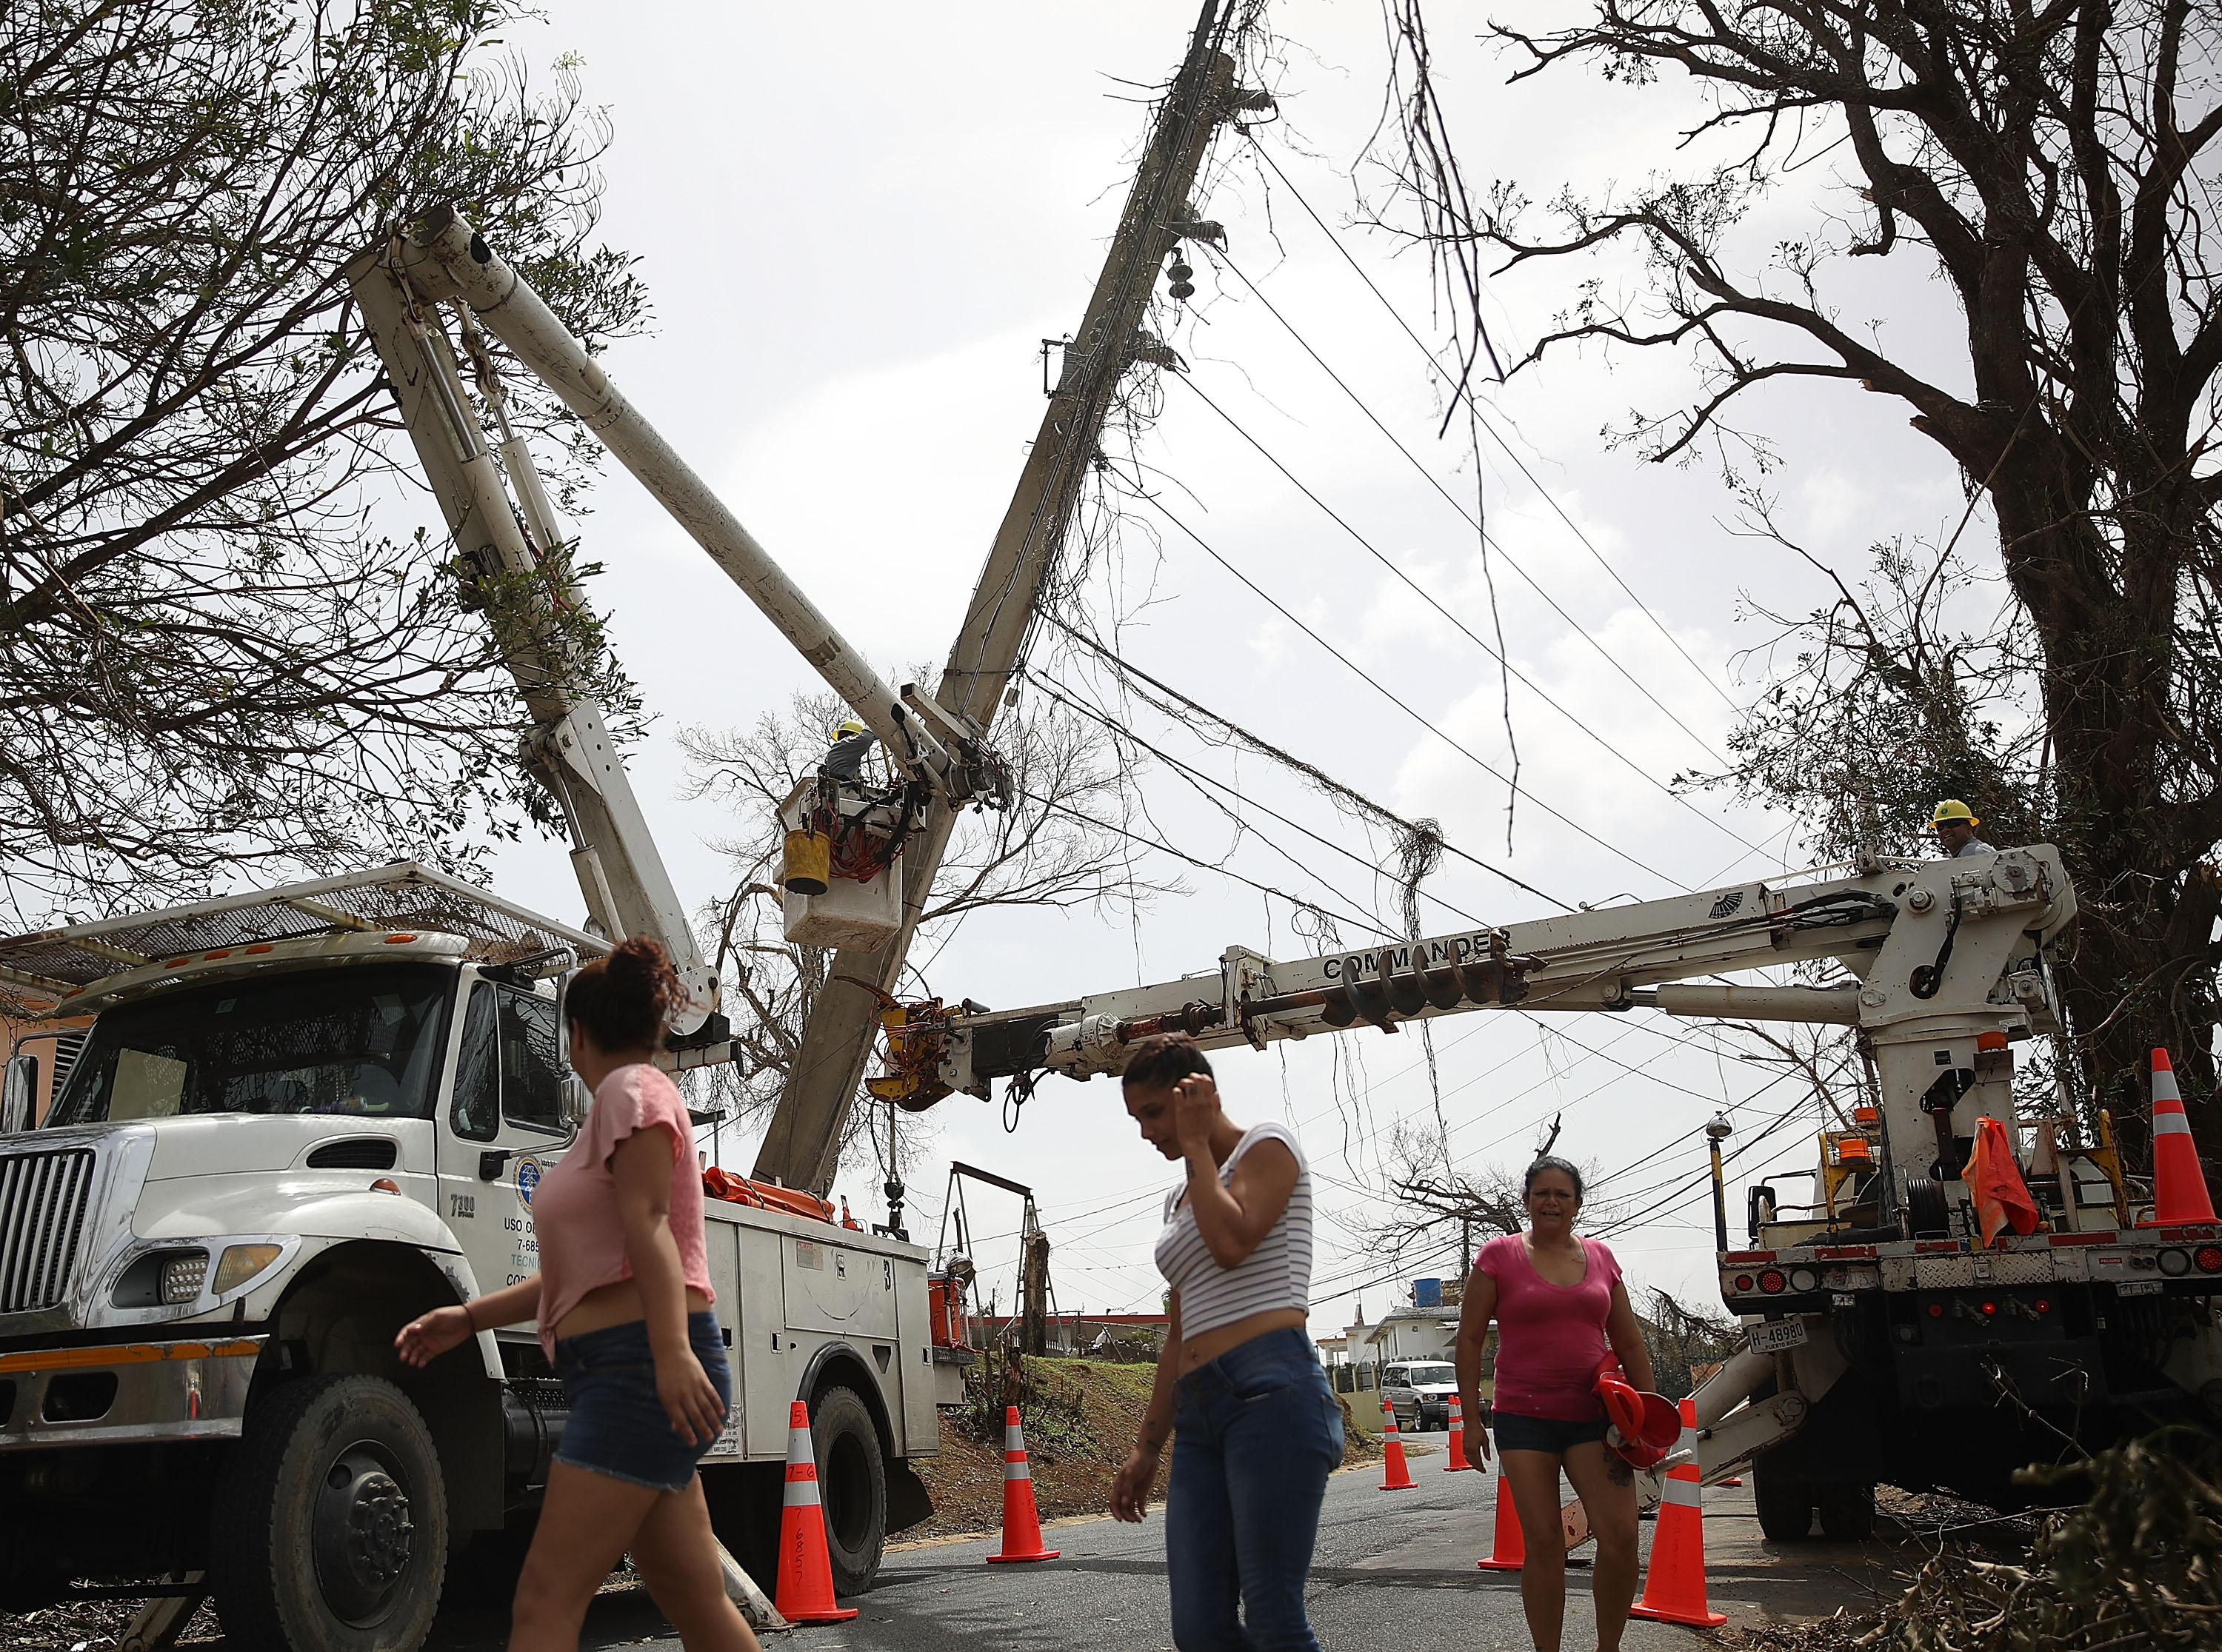 AT&T Drones Are Cleared for Take Off in Puerto Rico